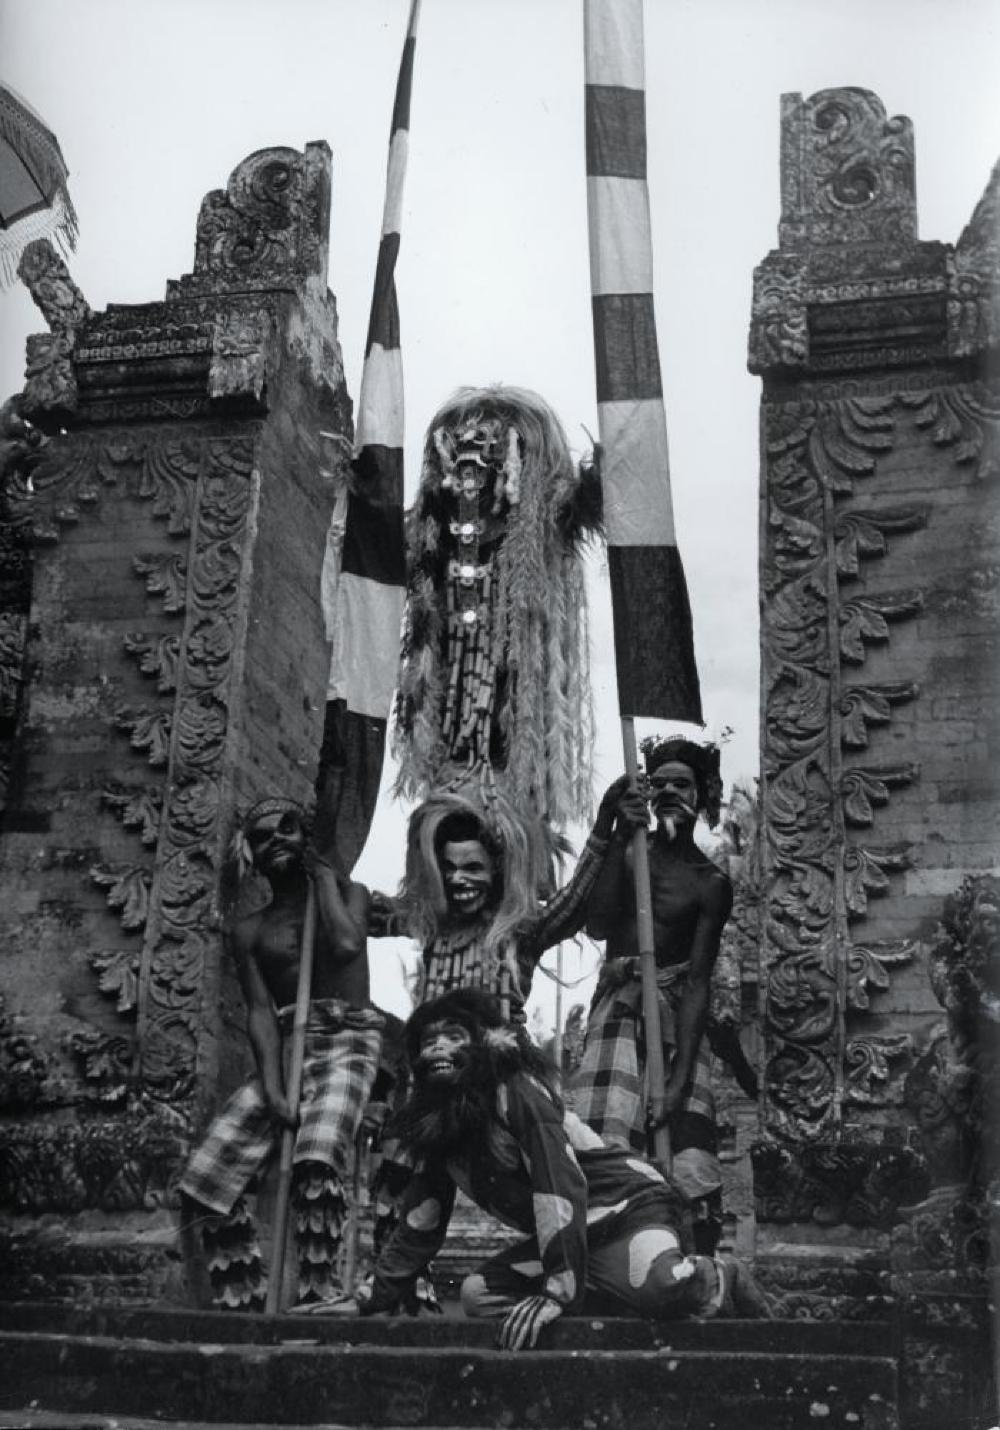 Bollingen travels: Barong performers with Candi bentar (split gate), Bali, Indonesia